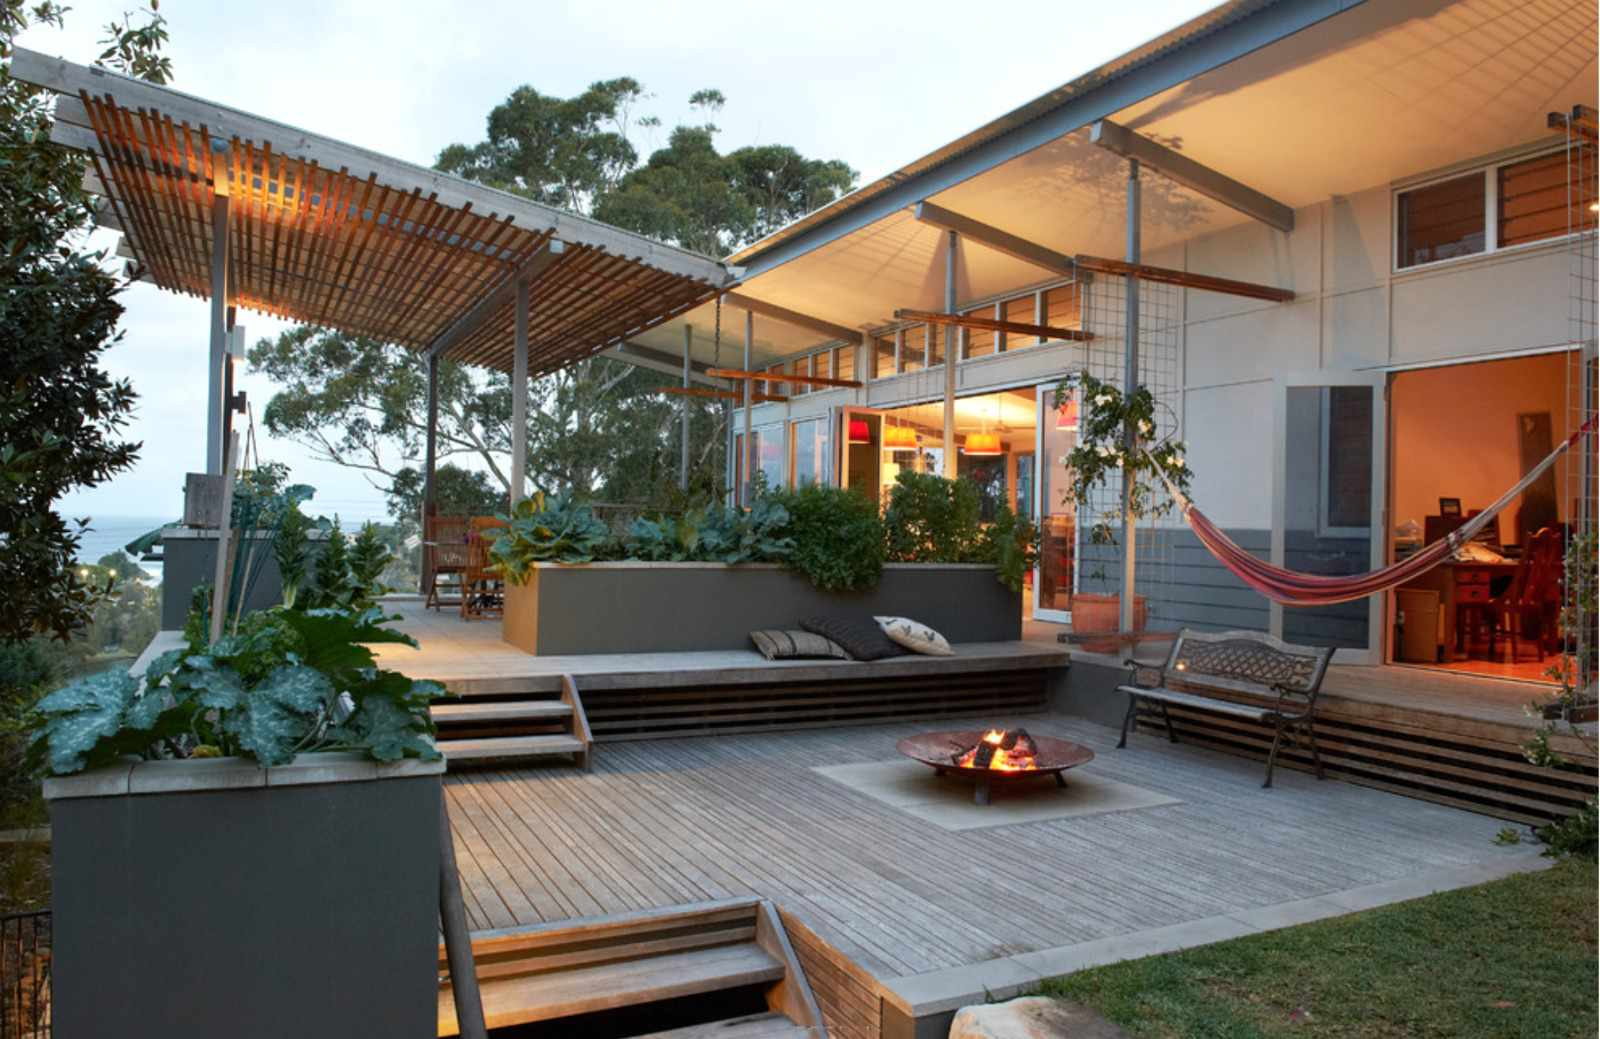 A series of covered decks in a backyard